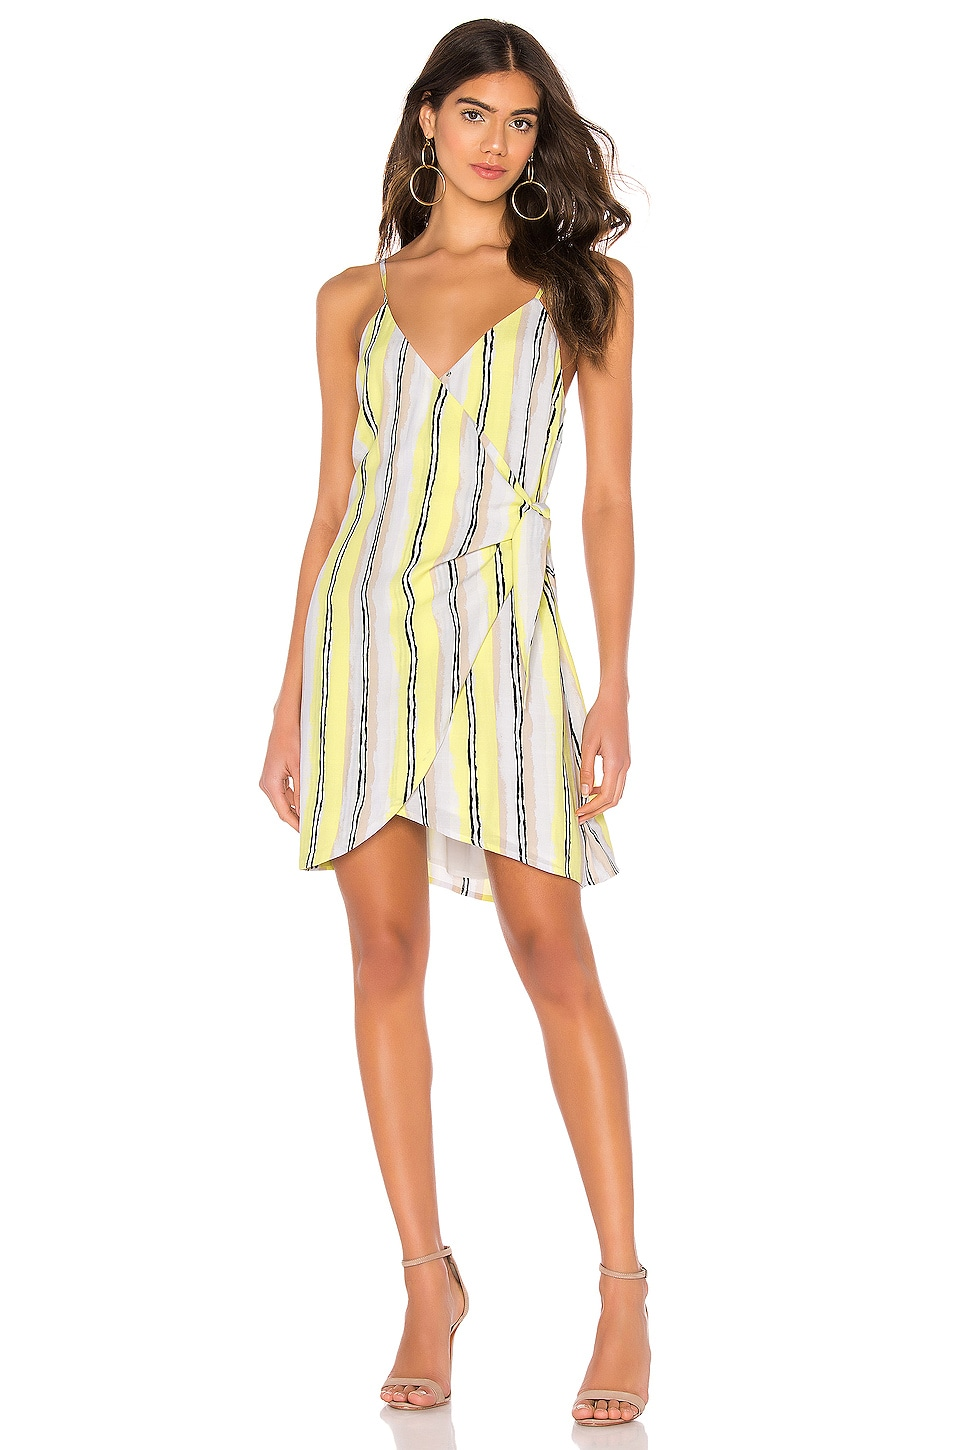 cupcakes and cashmere Rhea Dress in Lemon